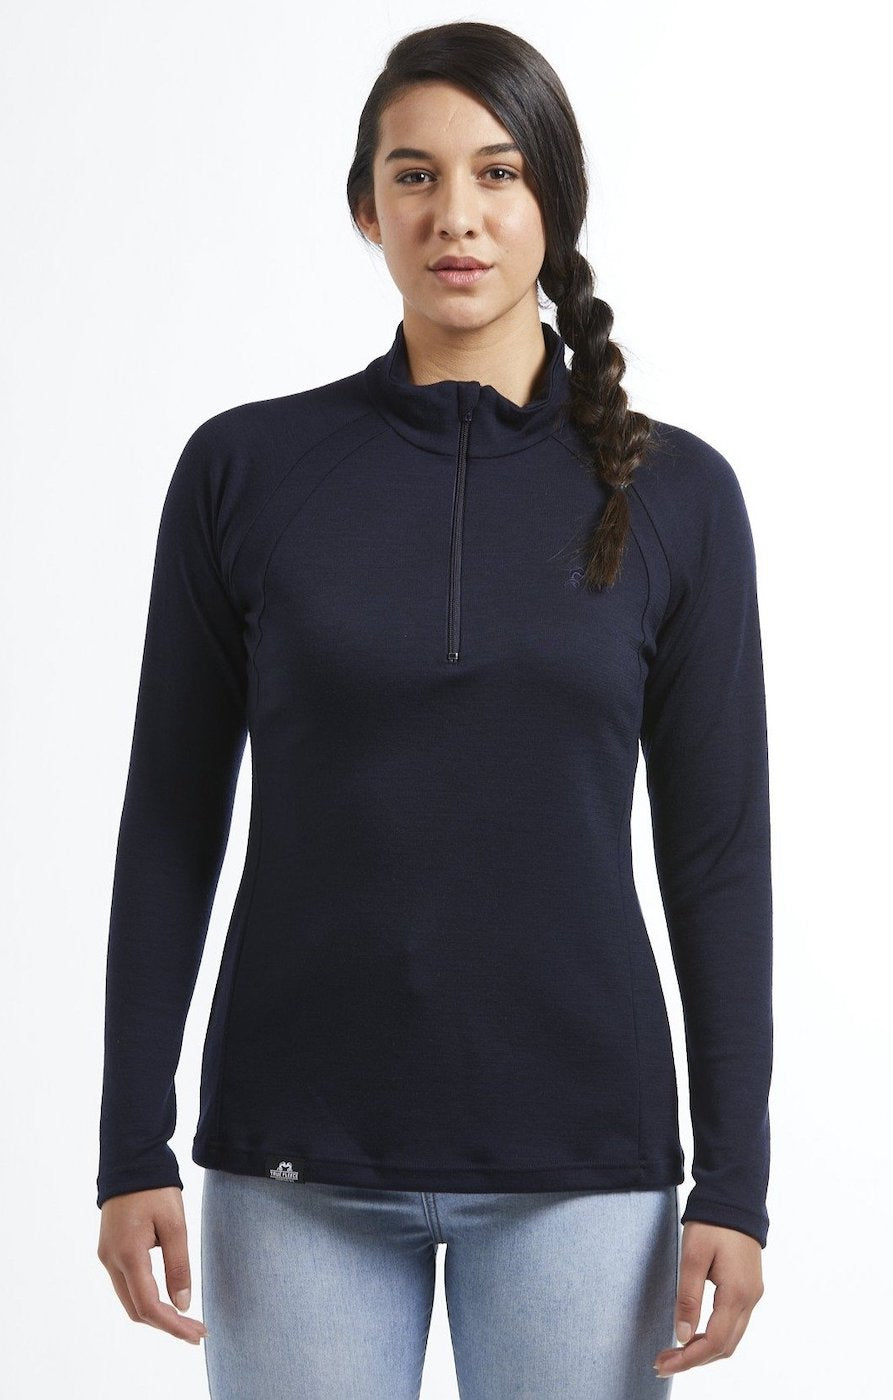 Hilltop Quarter Zip Jersey | Navy | True Fleece New Zealand